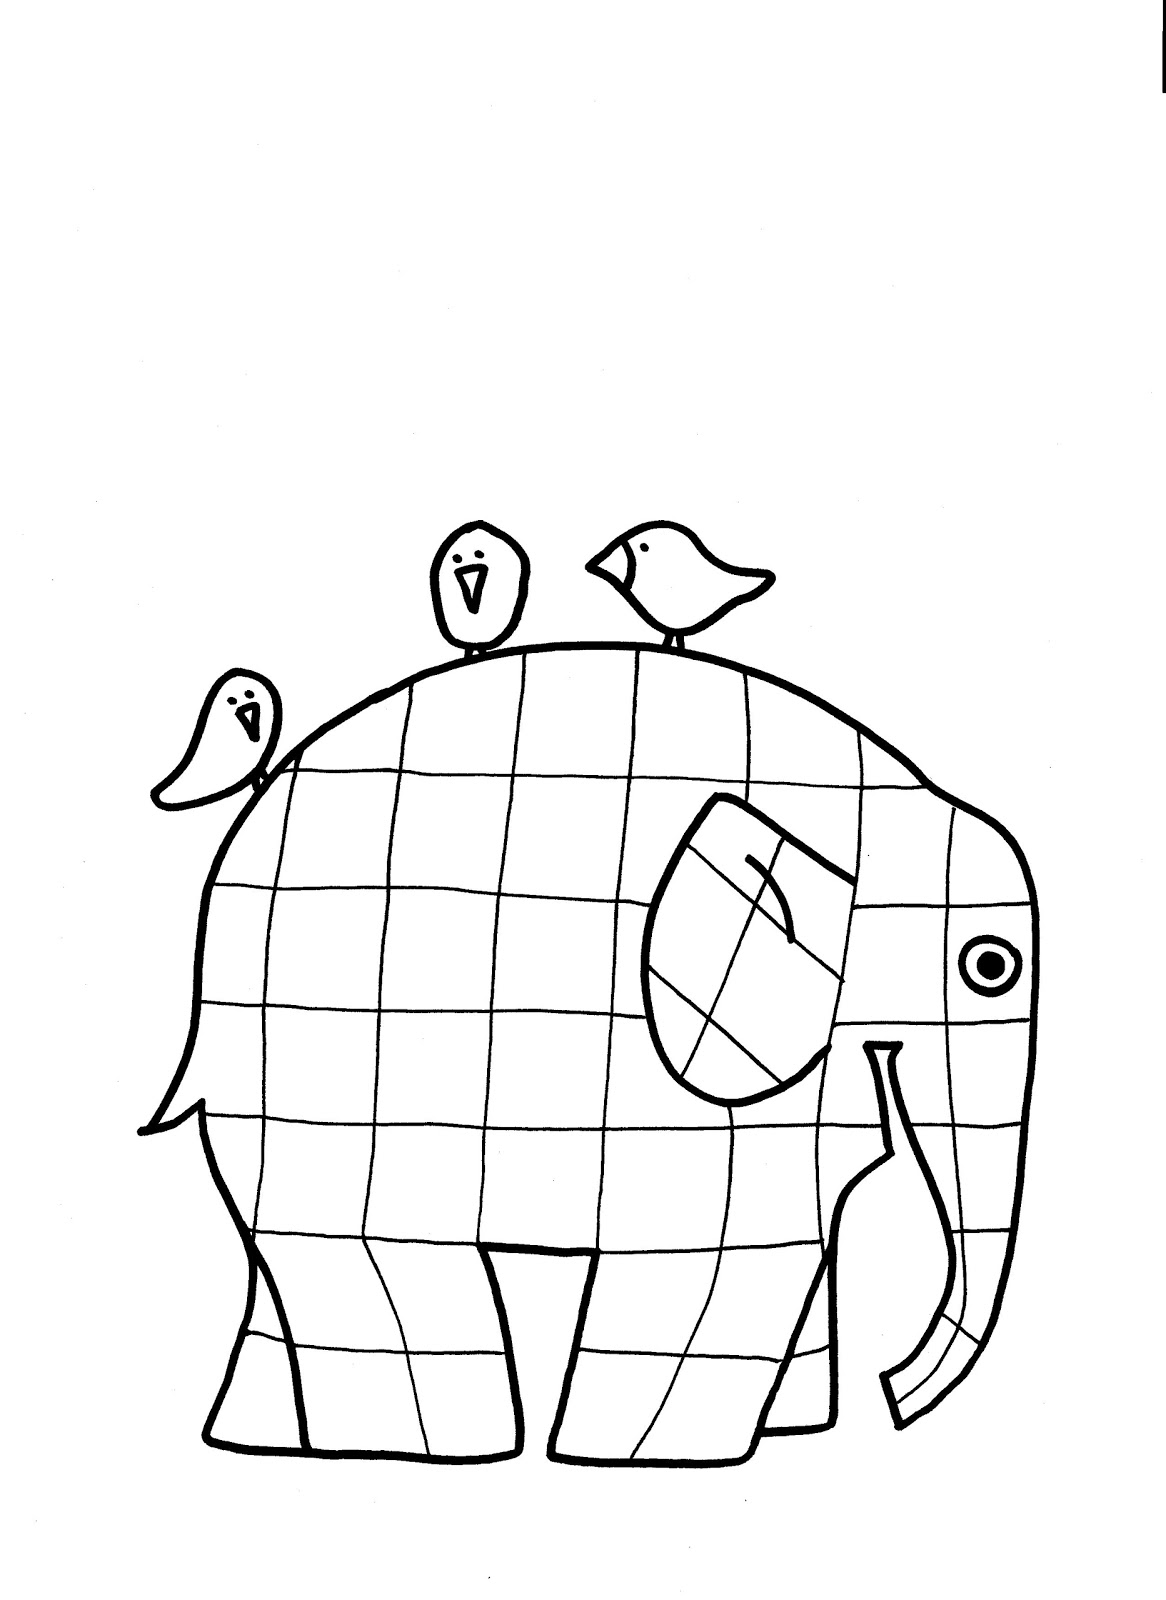 Elmer The Patchwork Elephant Coloring Page Lines Across Elmer Elephant Coloring Page